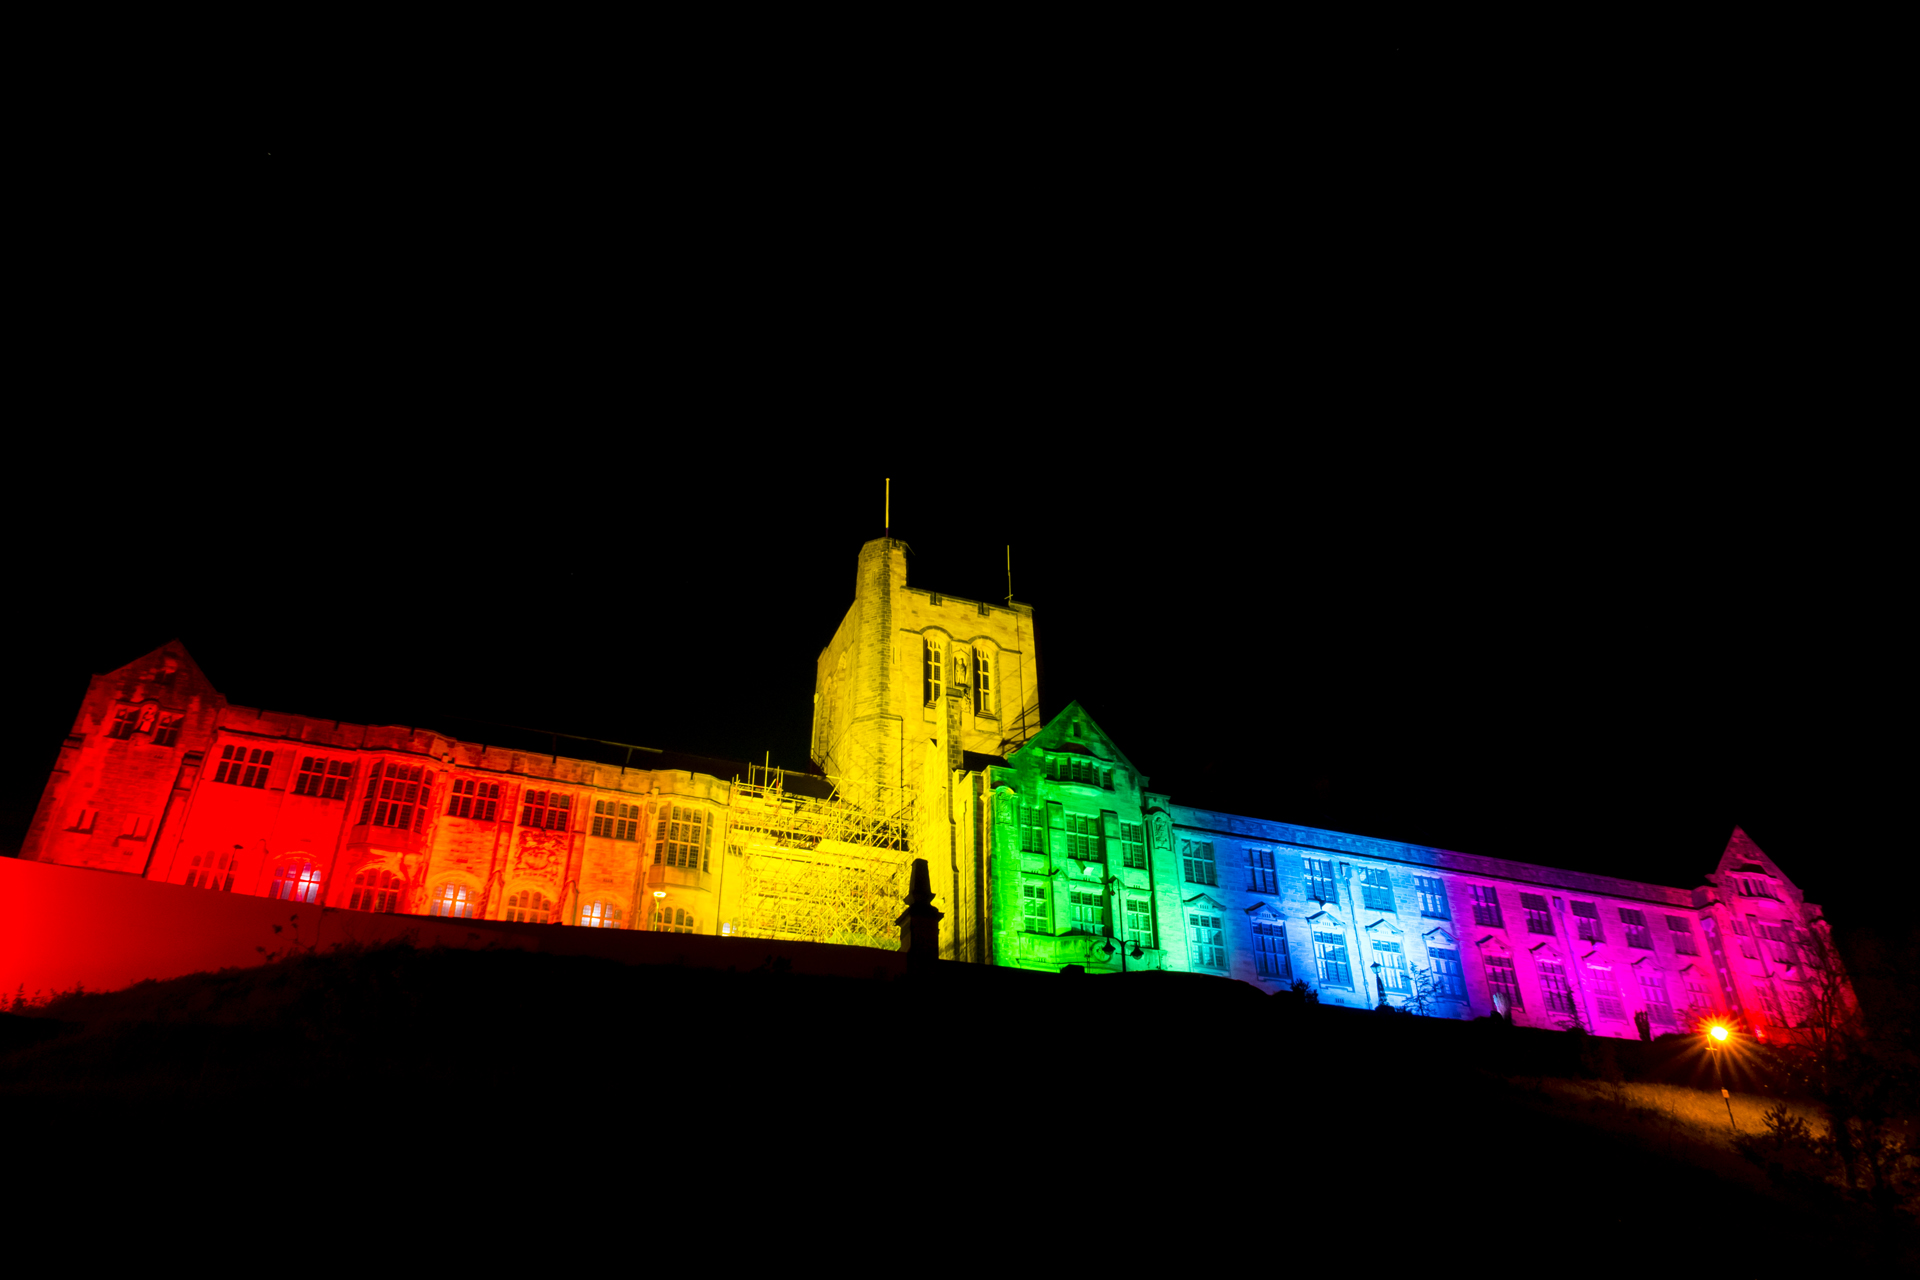 Outdoor rainbow lighting for NHS at Bangor university